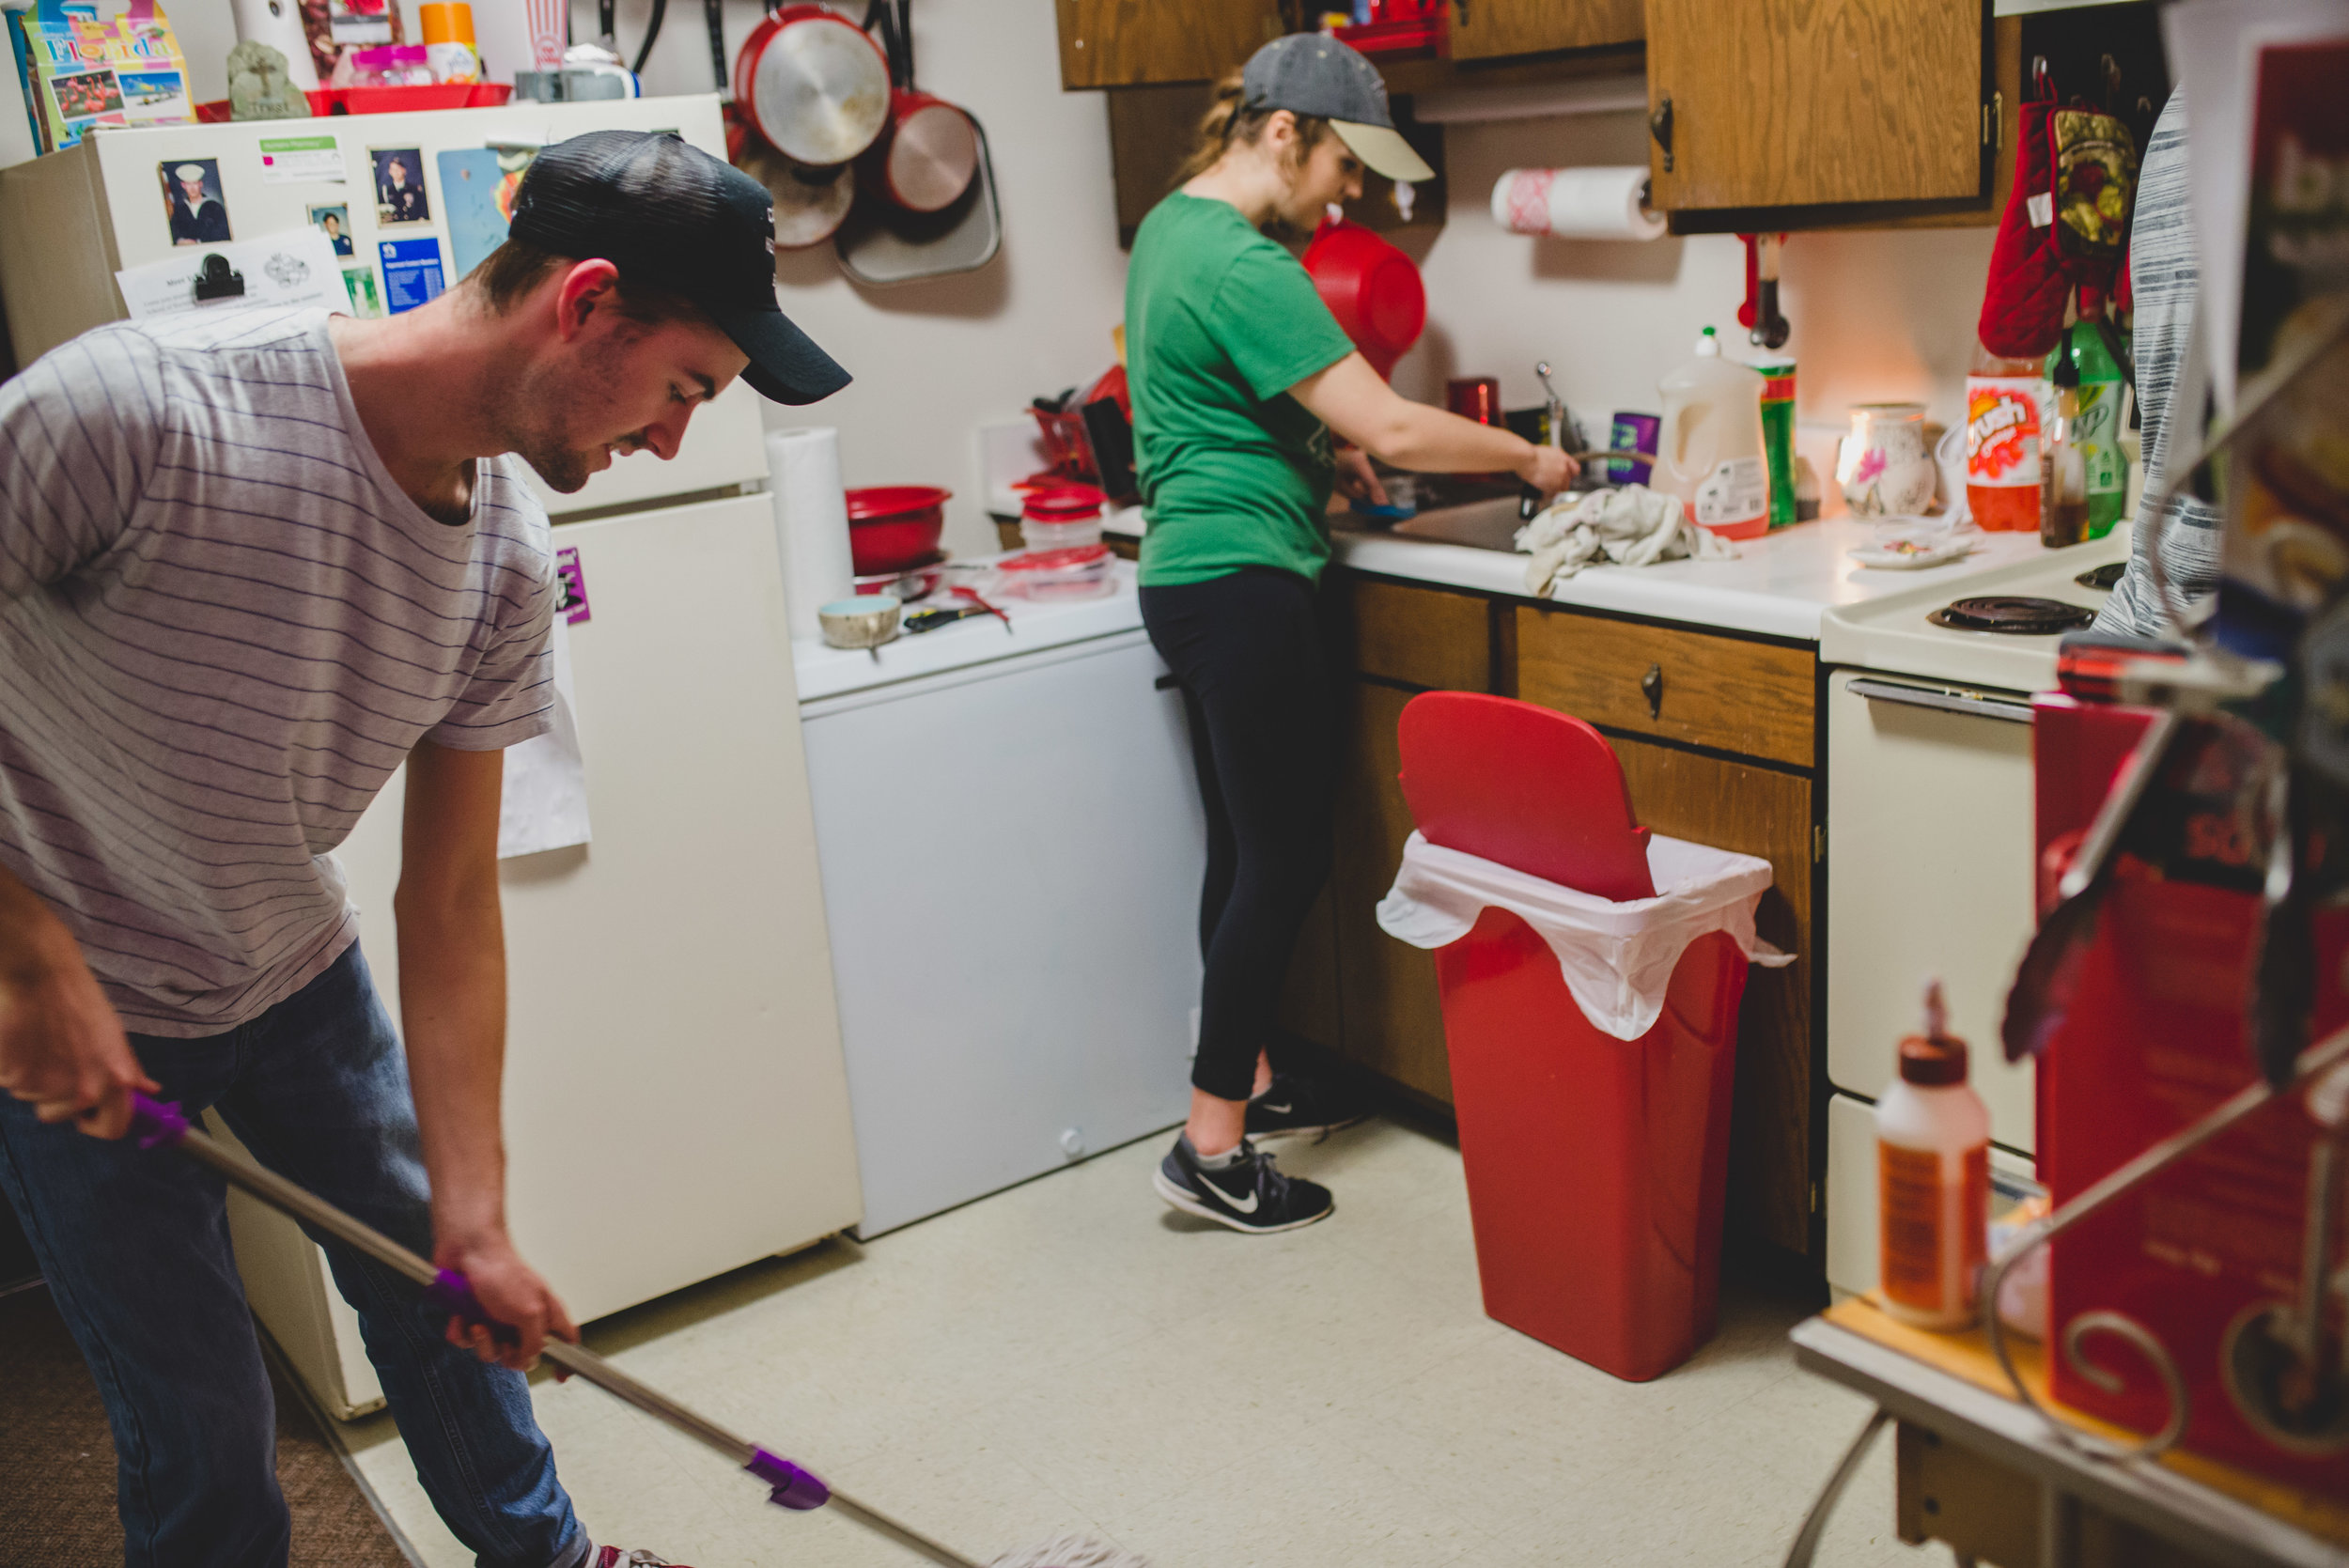 guy and girl clean apt.jpg